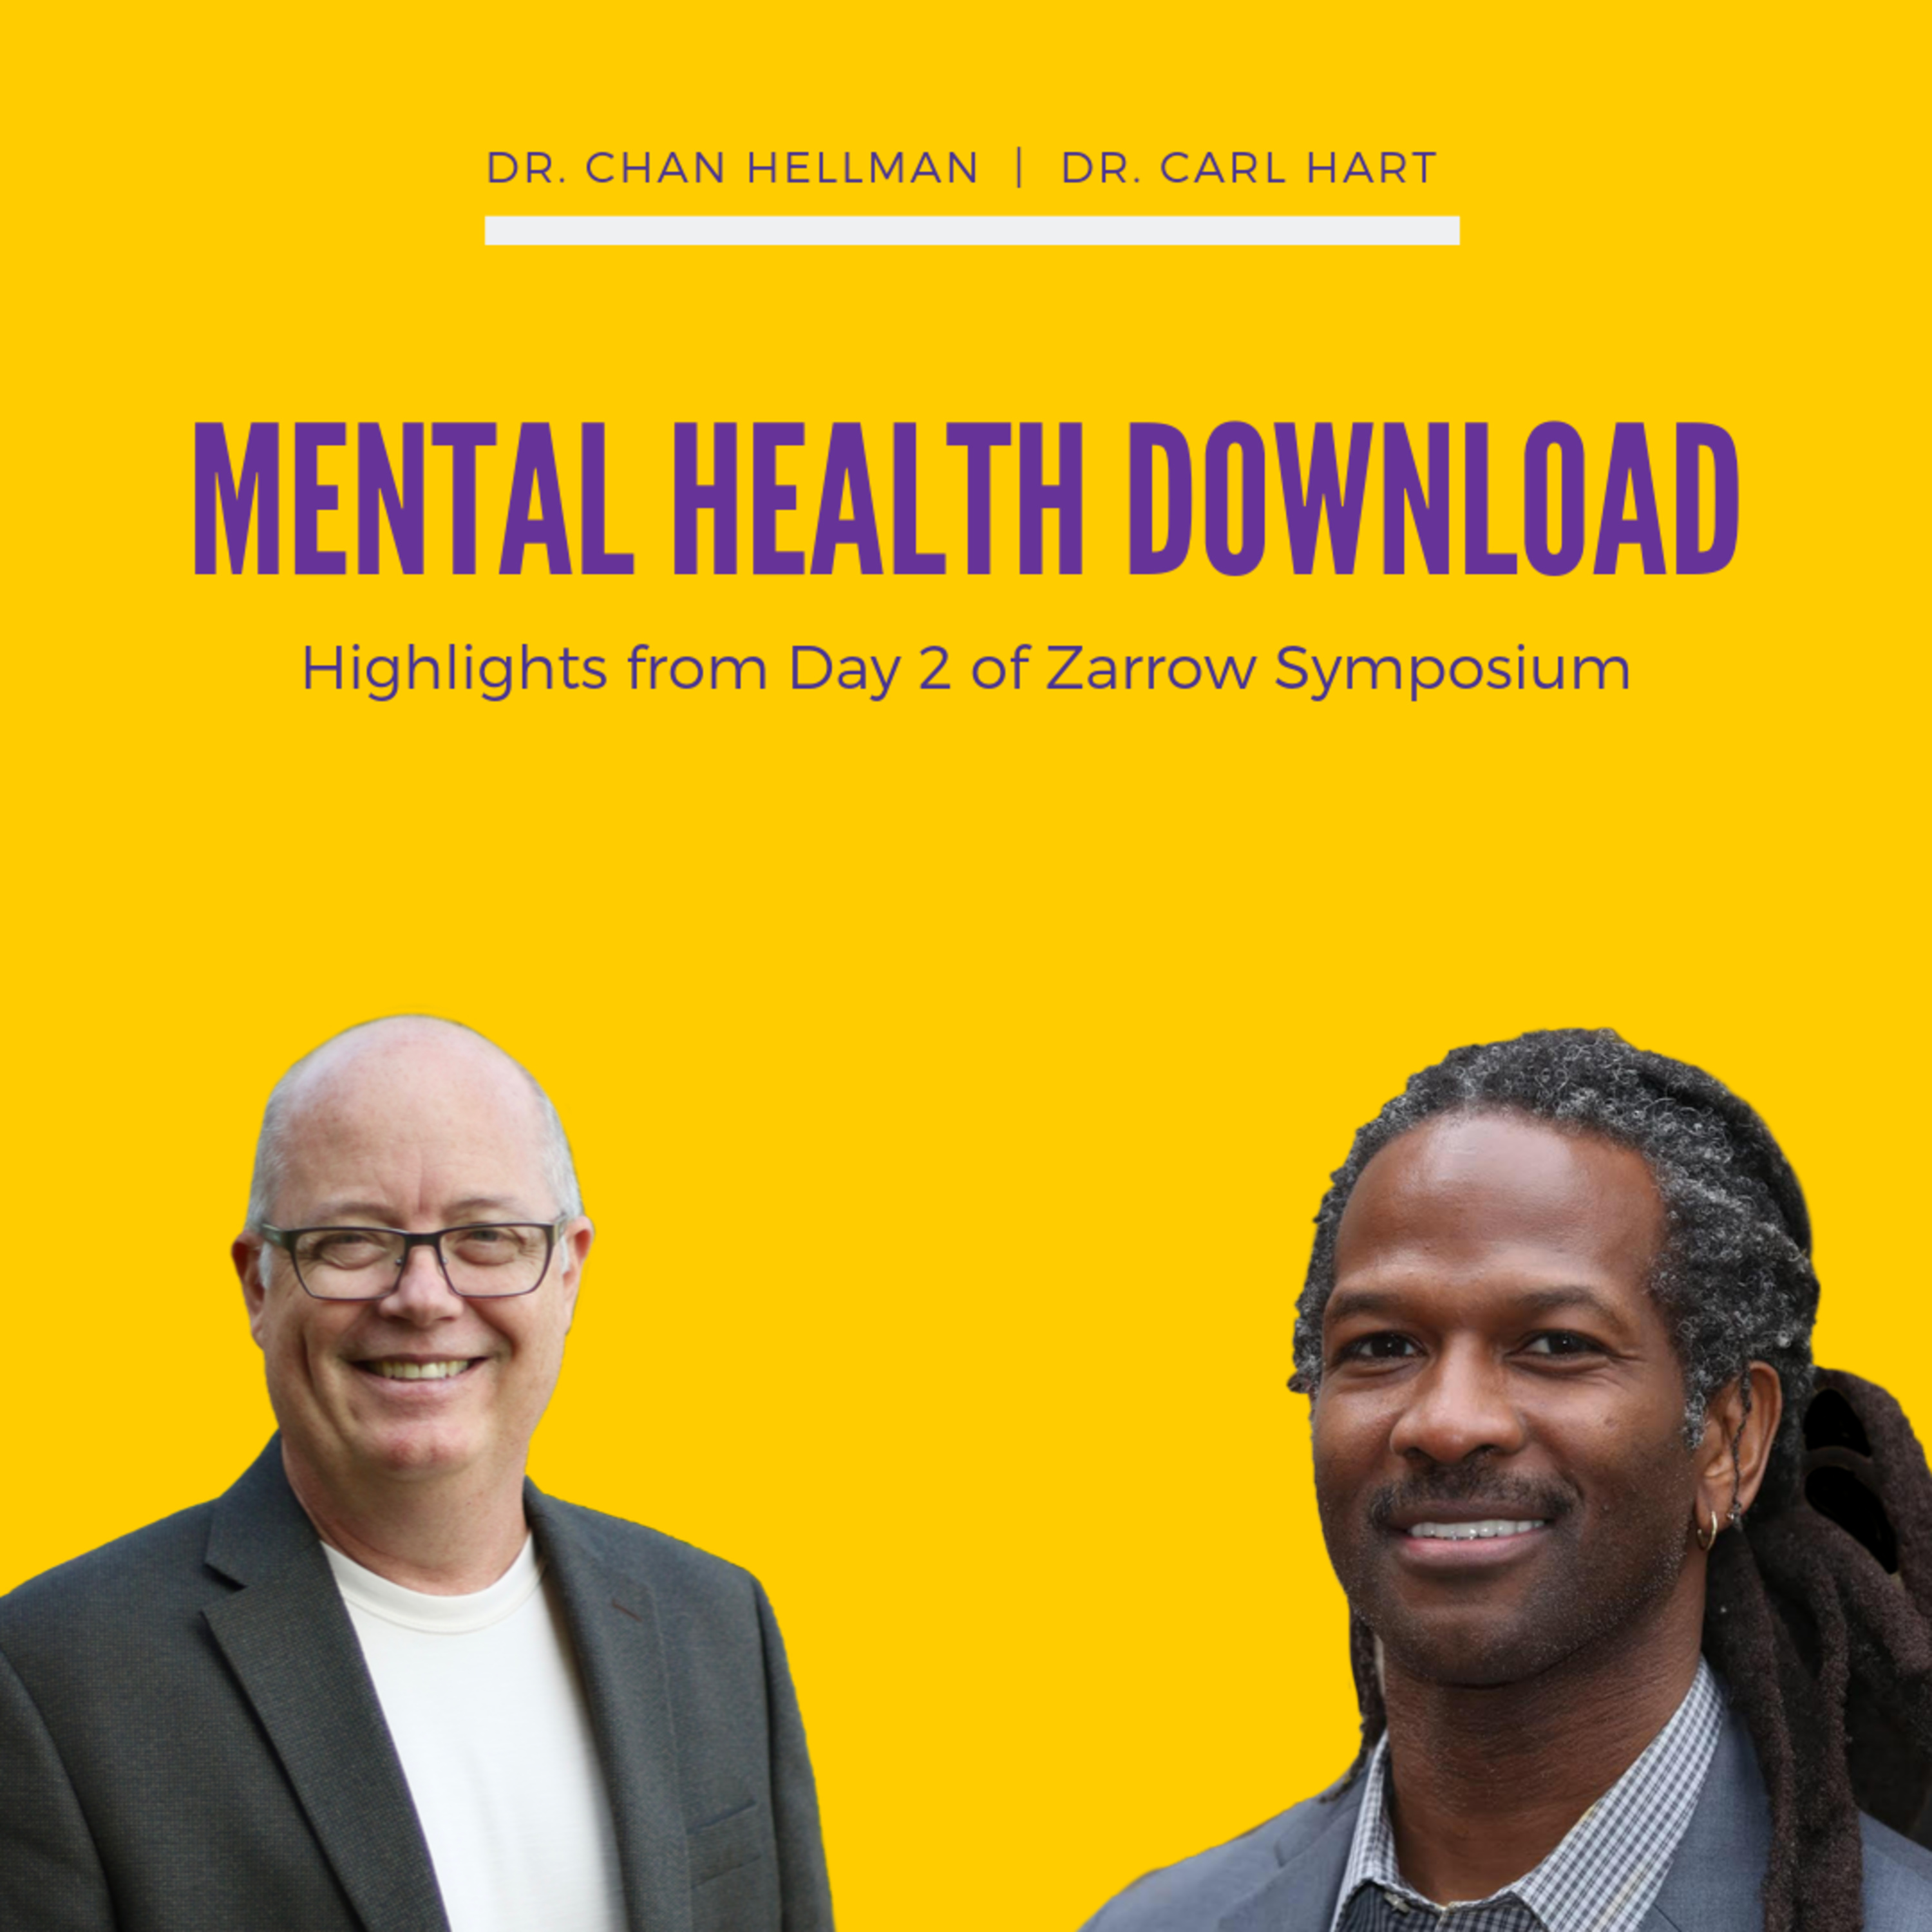 Mental Health Download: Exploring Mental Illness, Suicide, Homelessness and Incarceration - Listen to Zarrow Symposium Keynotes Part 2: Dr. Chan Hellman & Dr. Carl Hart